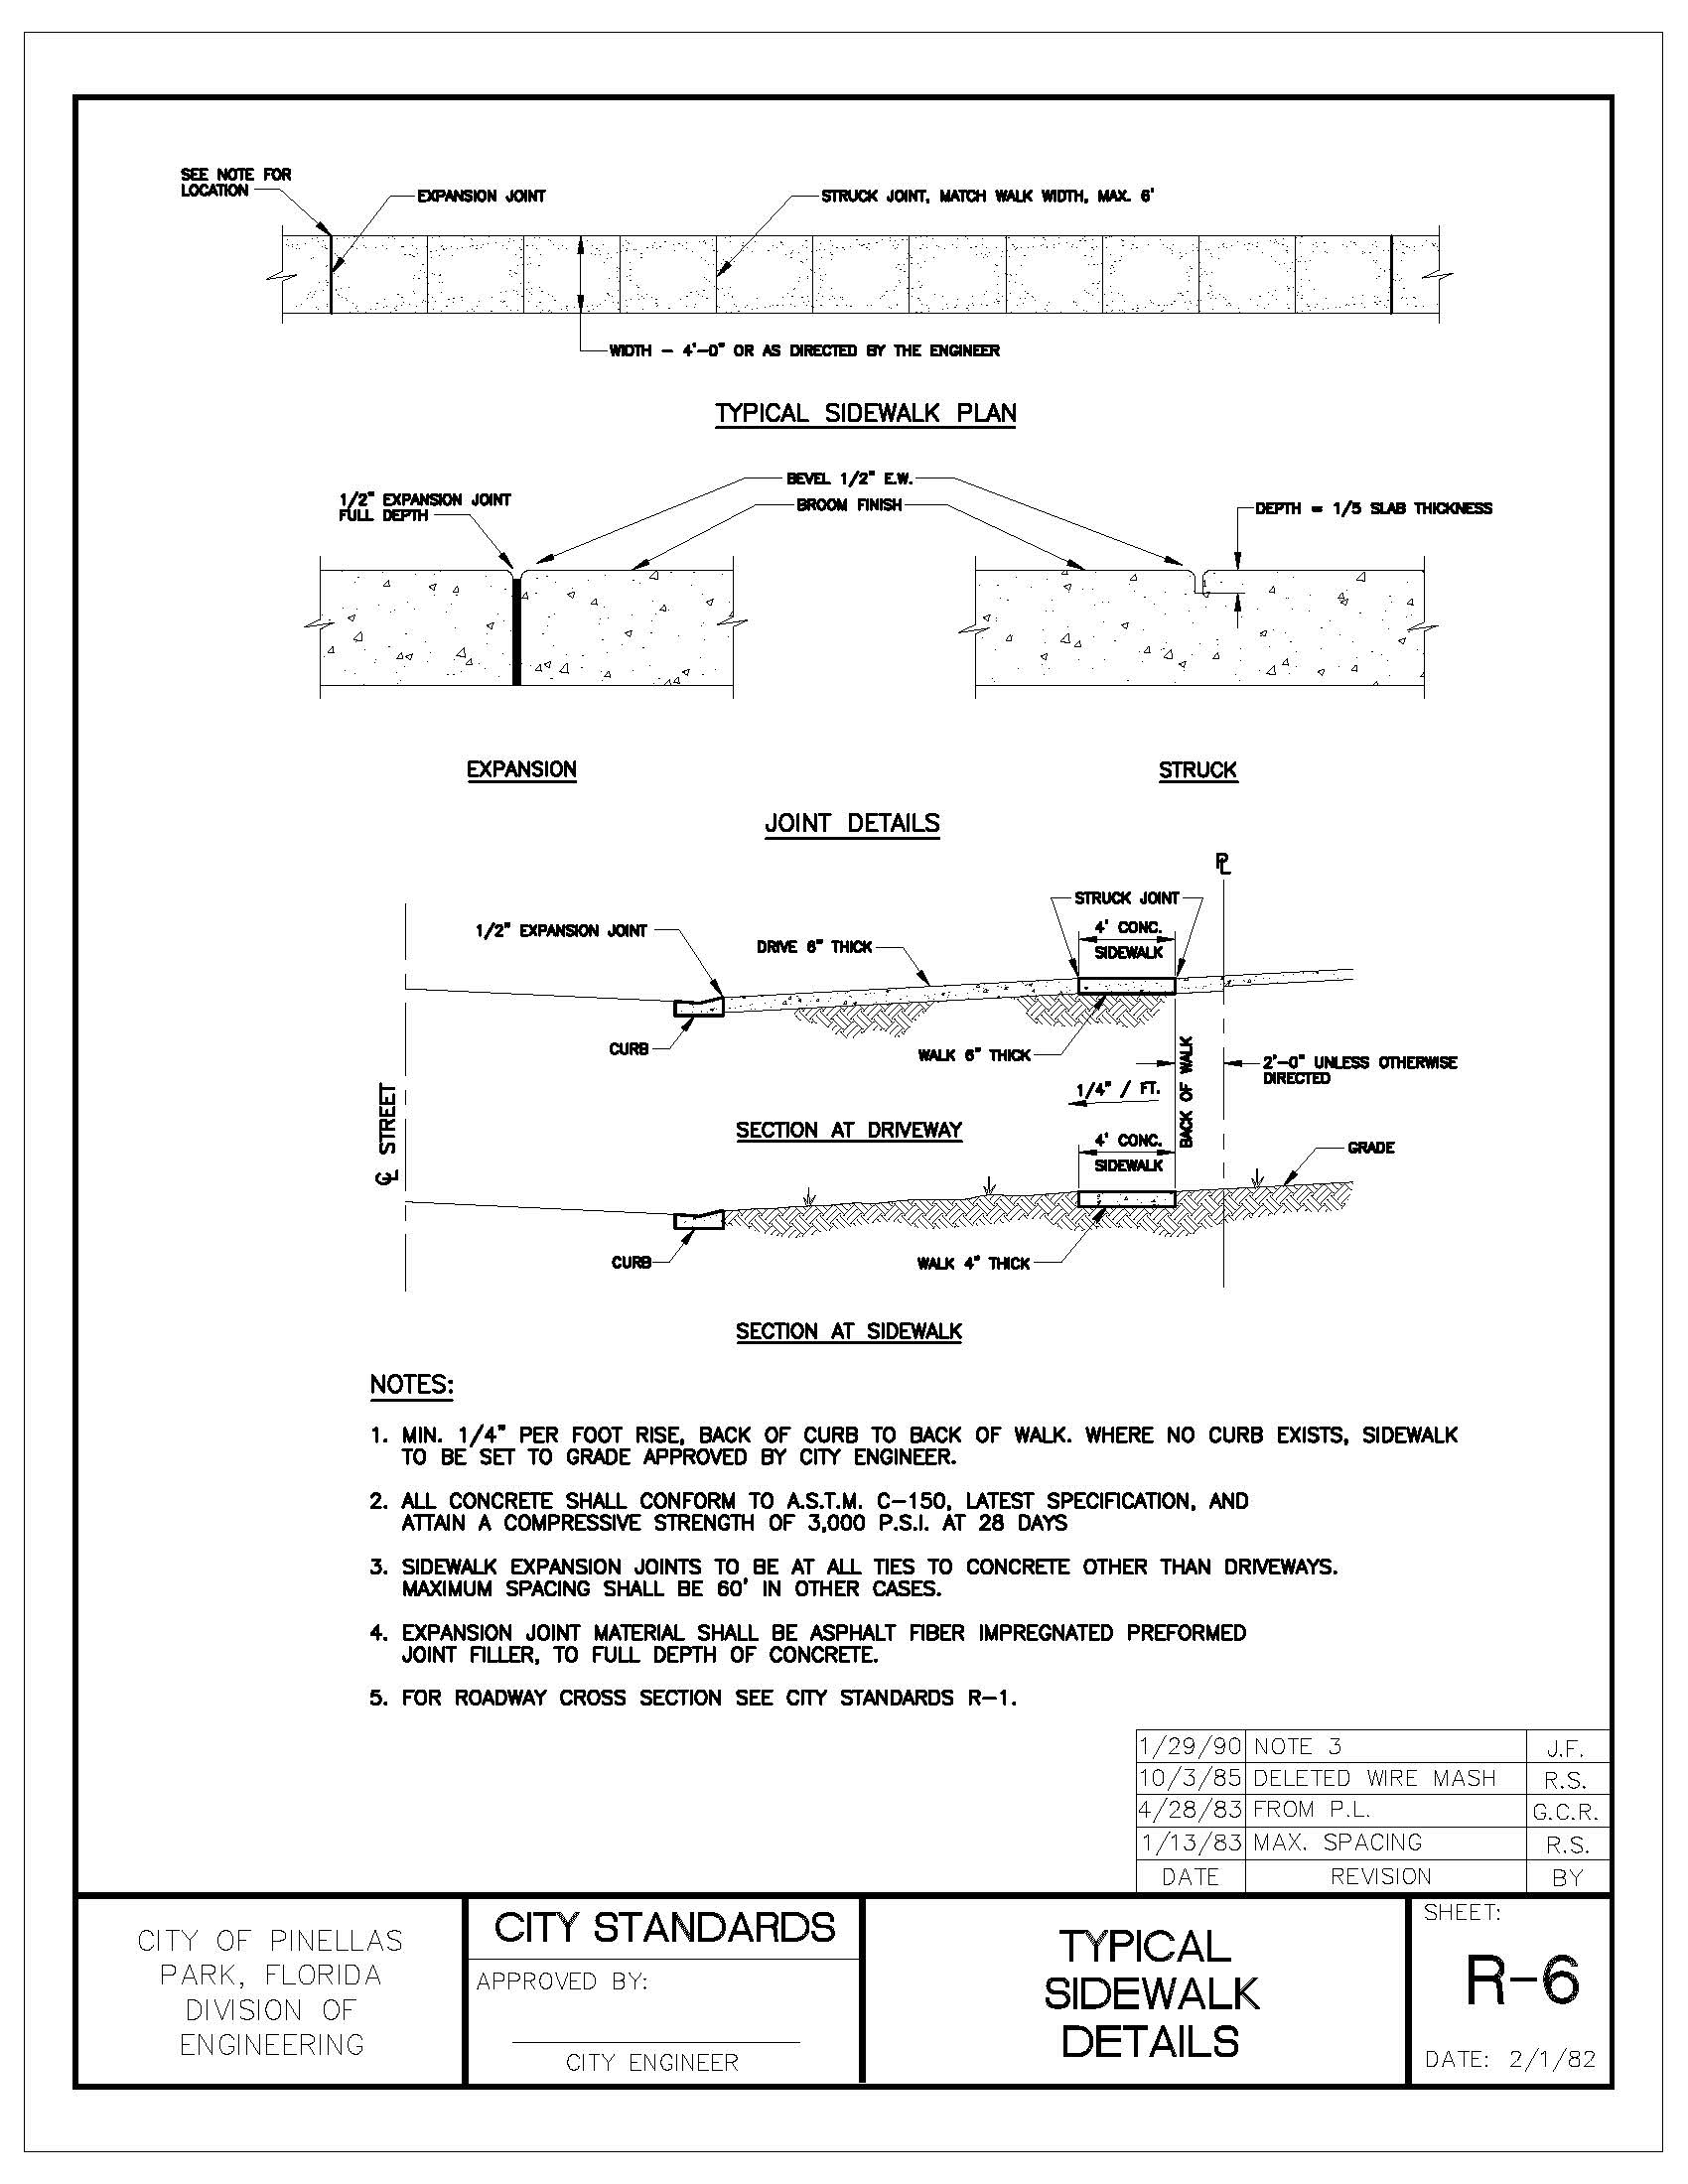 Engineering Manual v5_201908121127291138_Page_043 typical sidewalk details